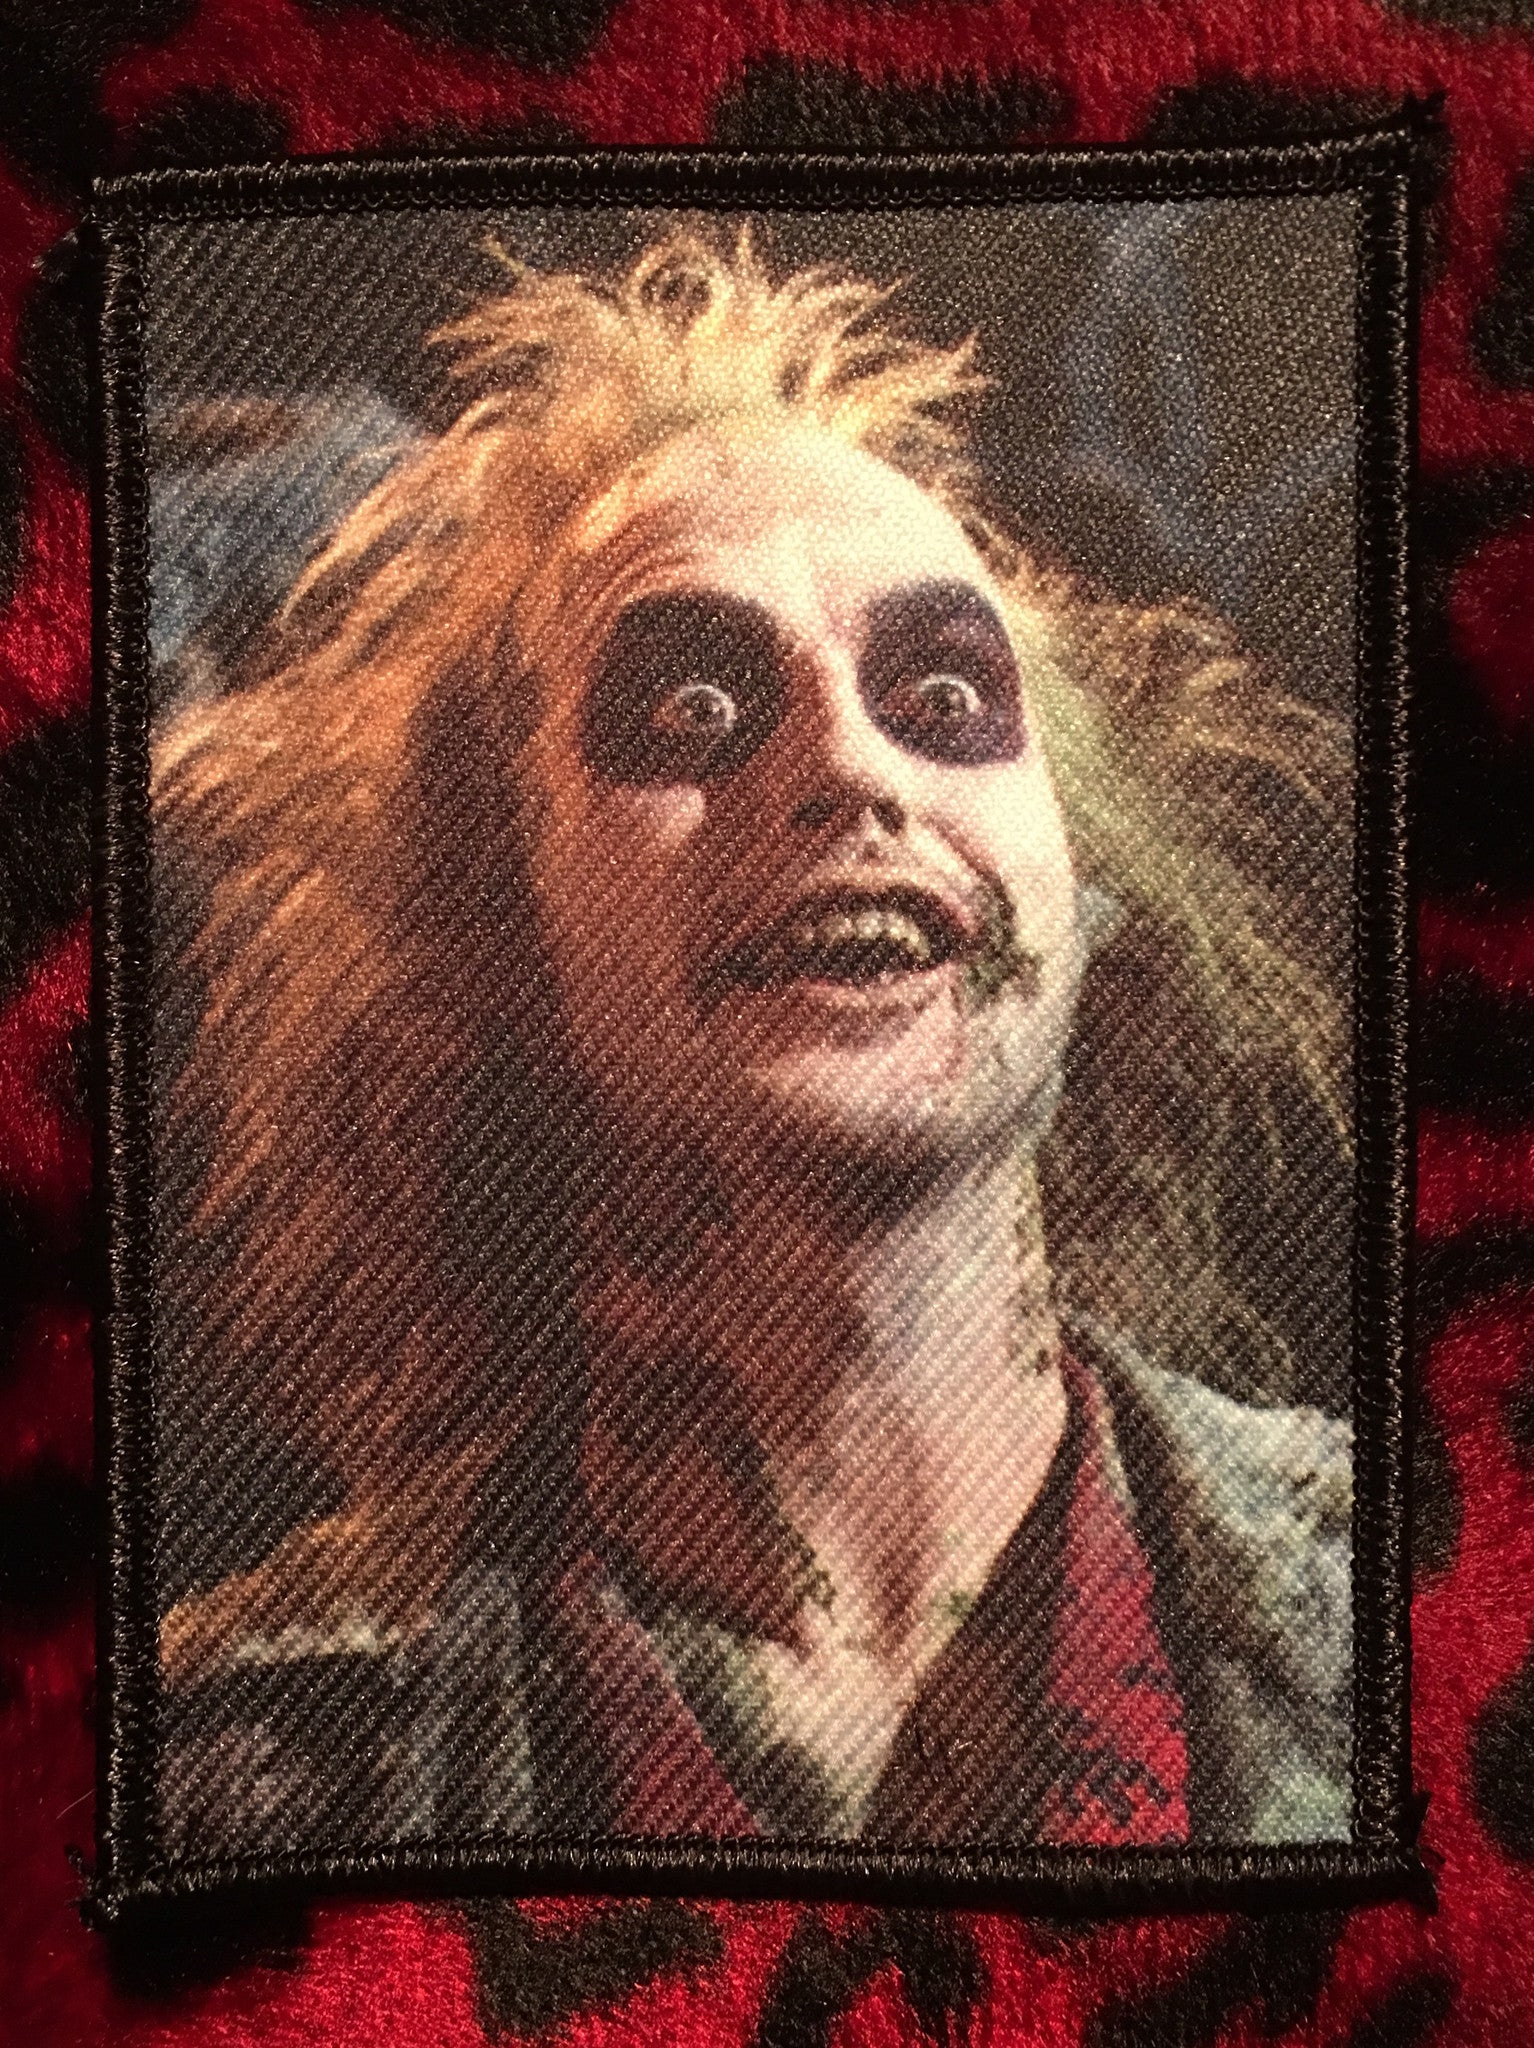 Beetlejuice Face Patch